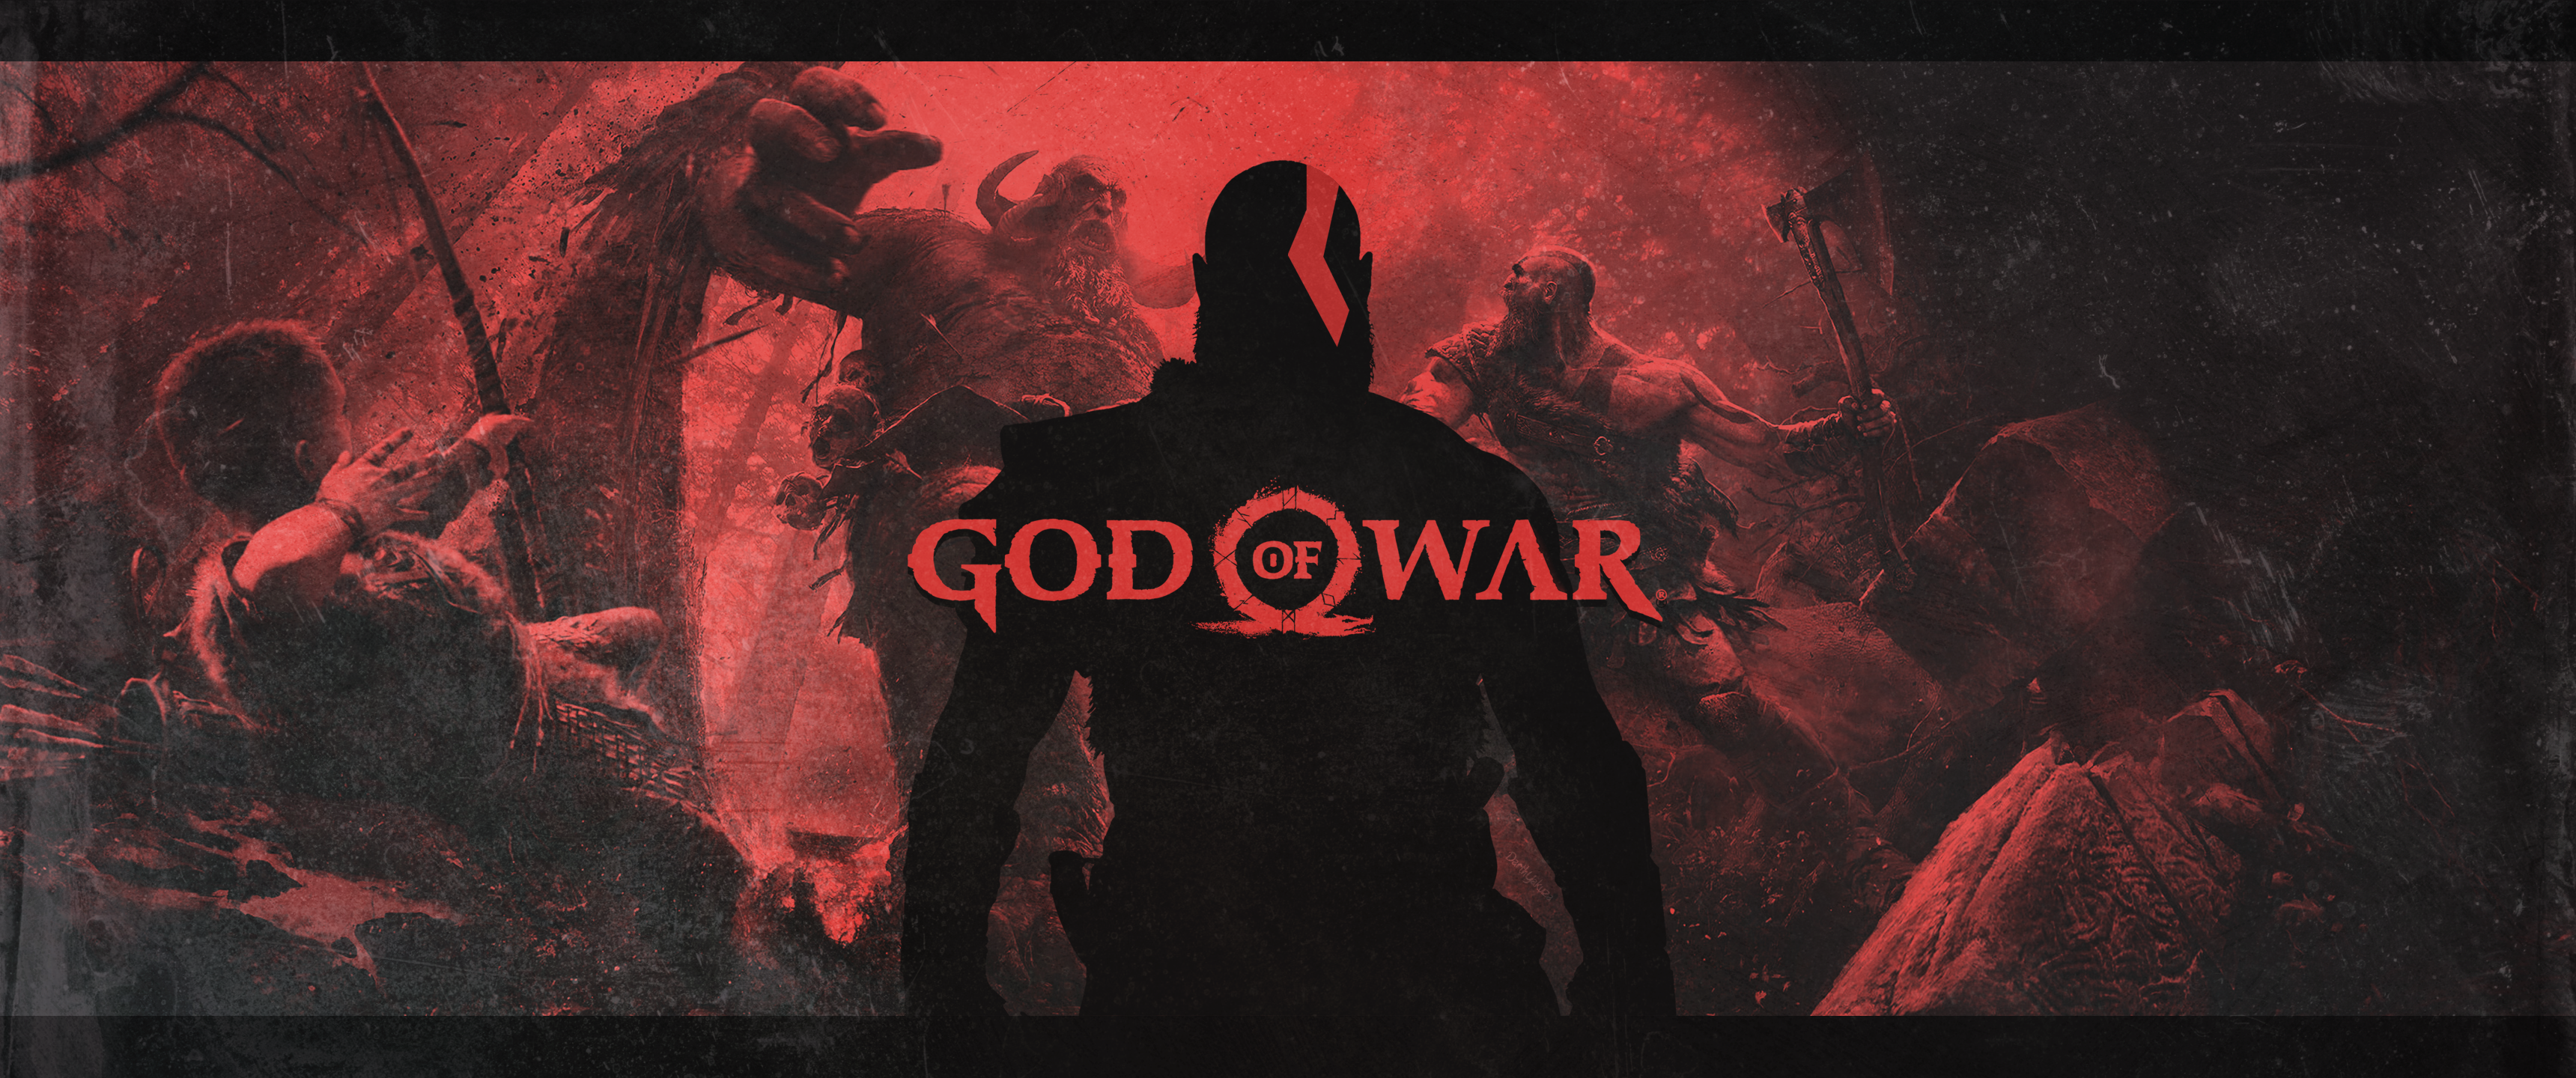 God Of War 4 3440x1440 Art Dessin Illustration